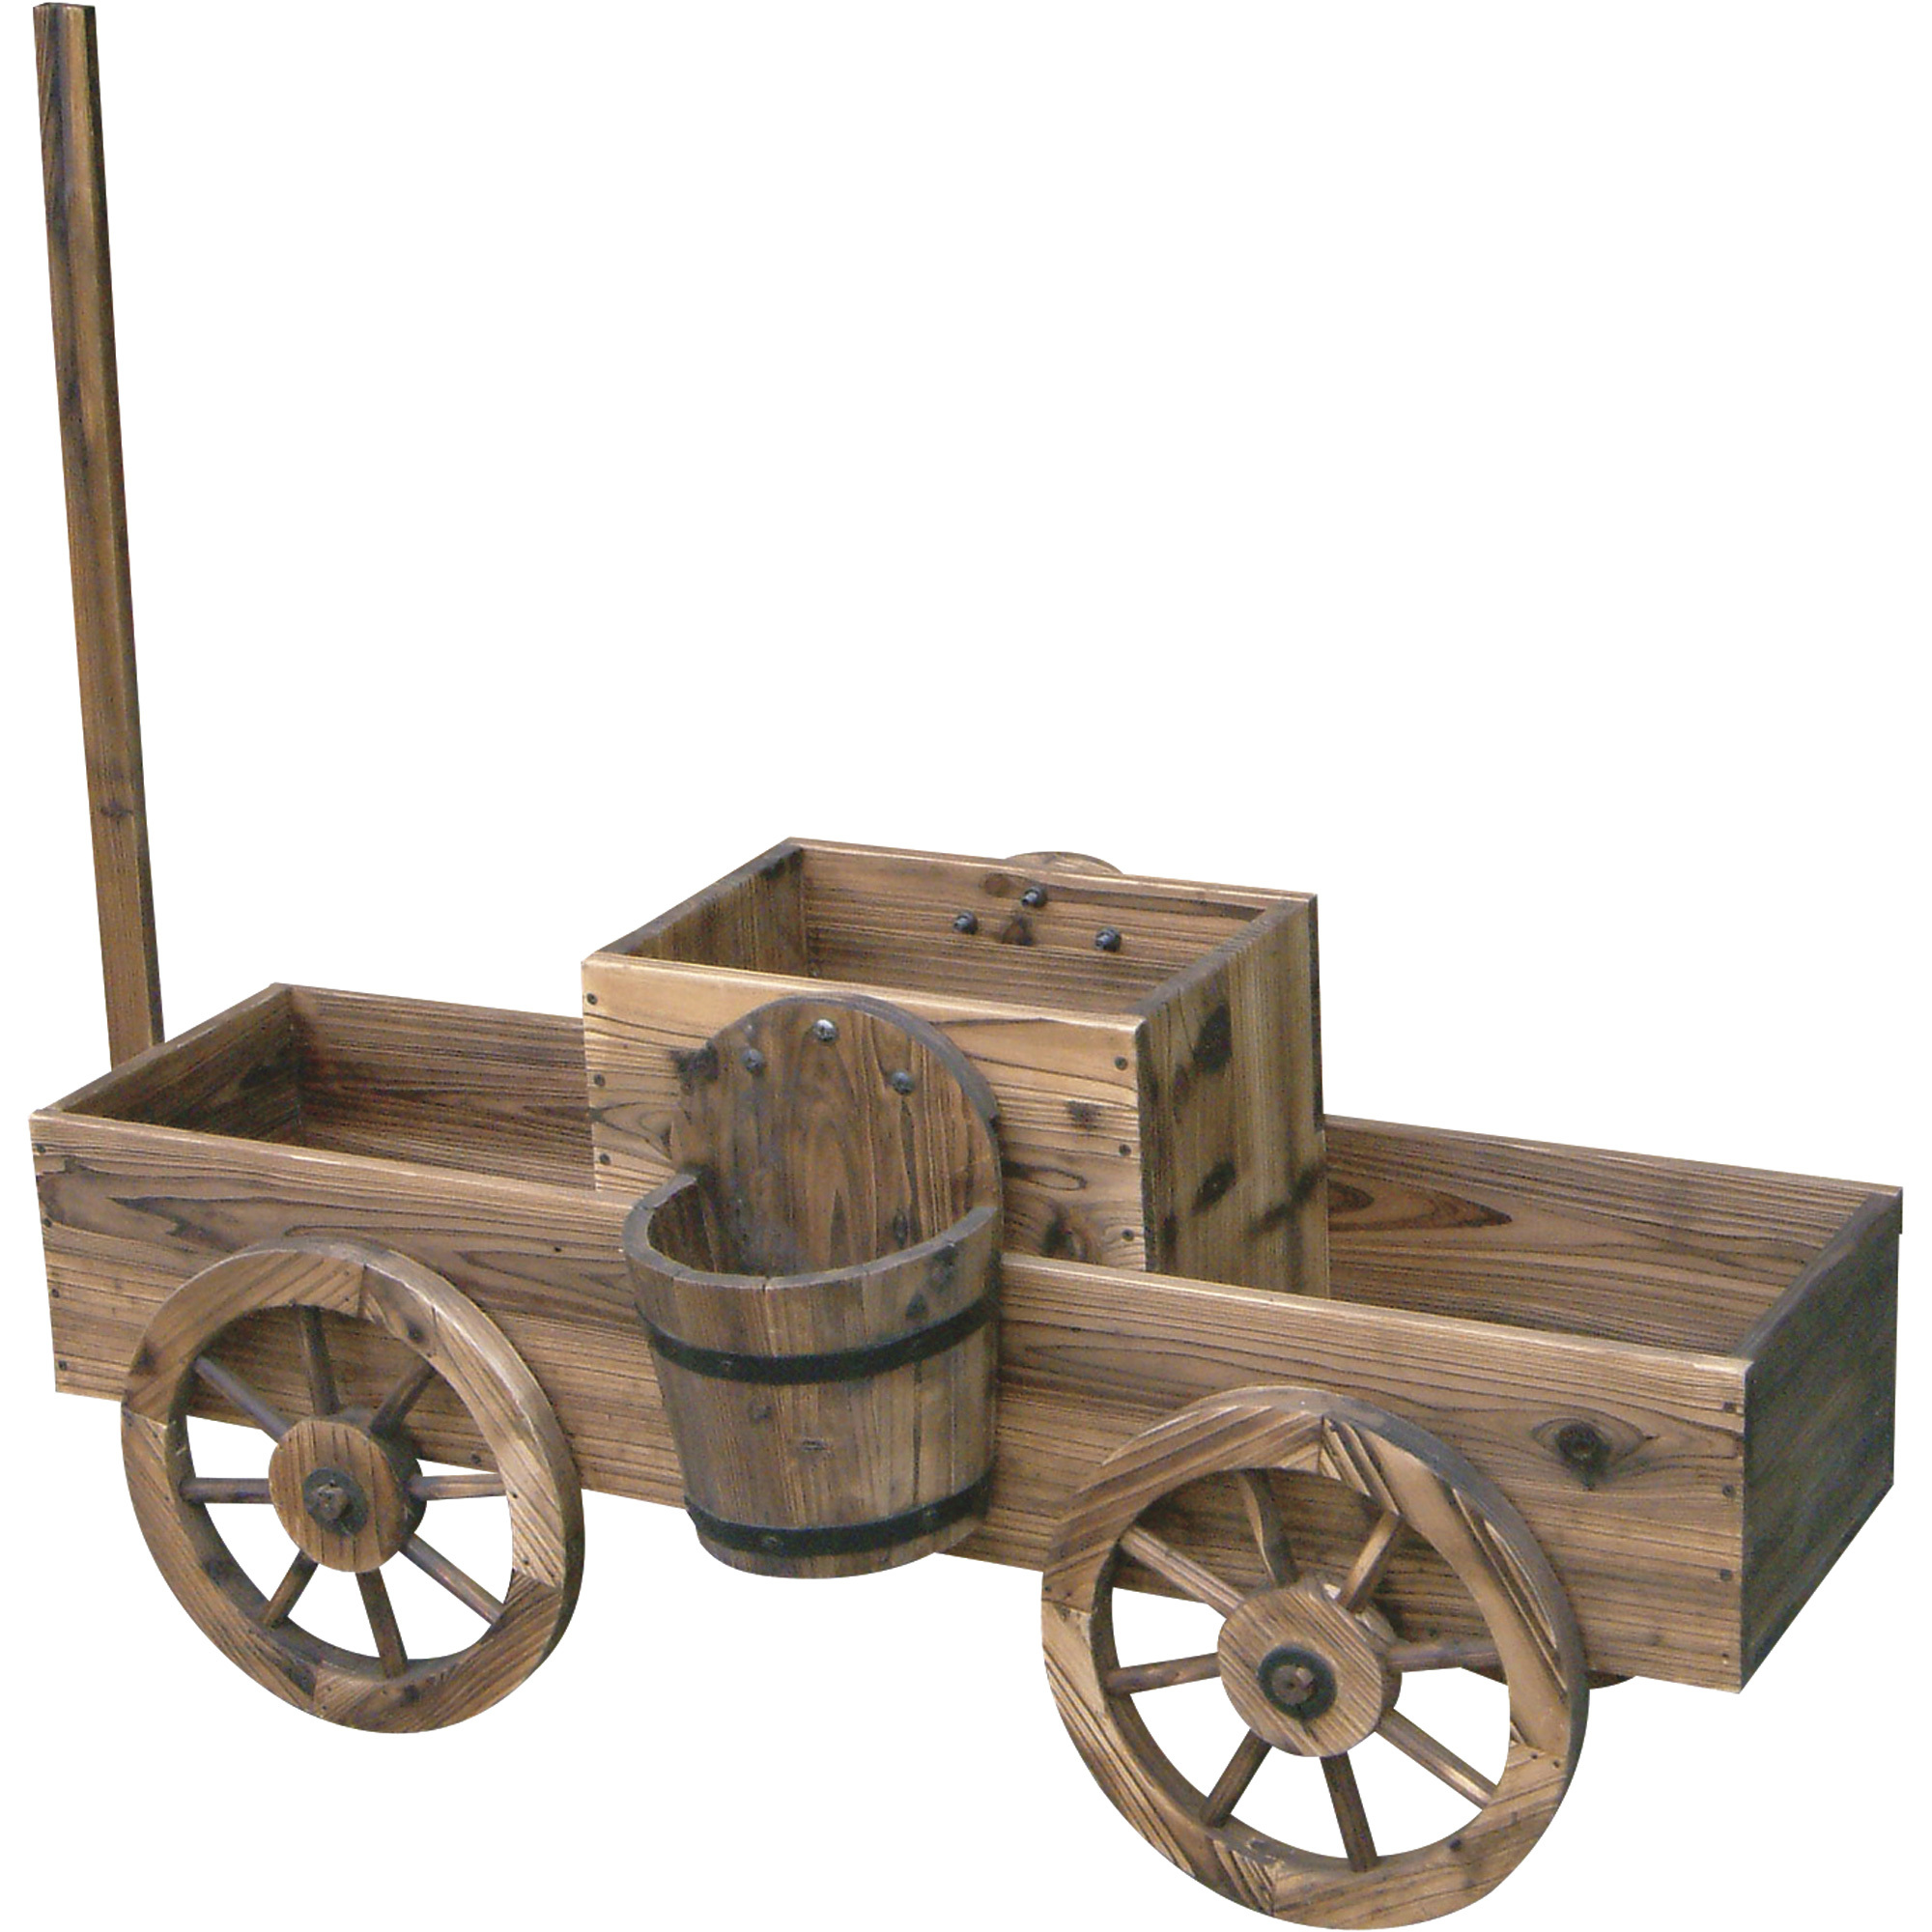 Stonegate designs 2 tiered wooden wagon planter model t for Wooden garden planter designs